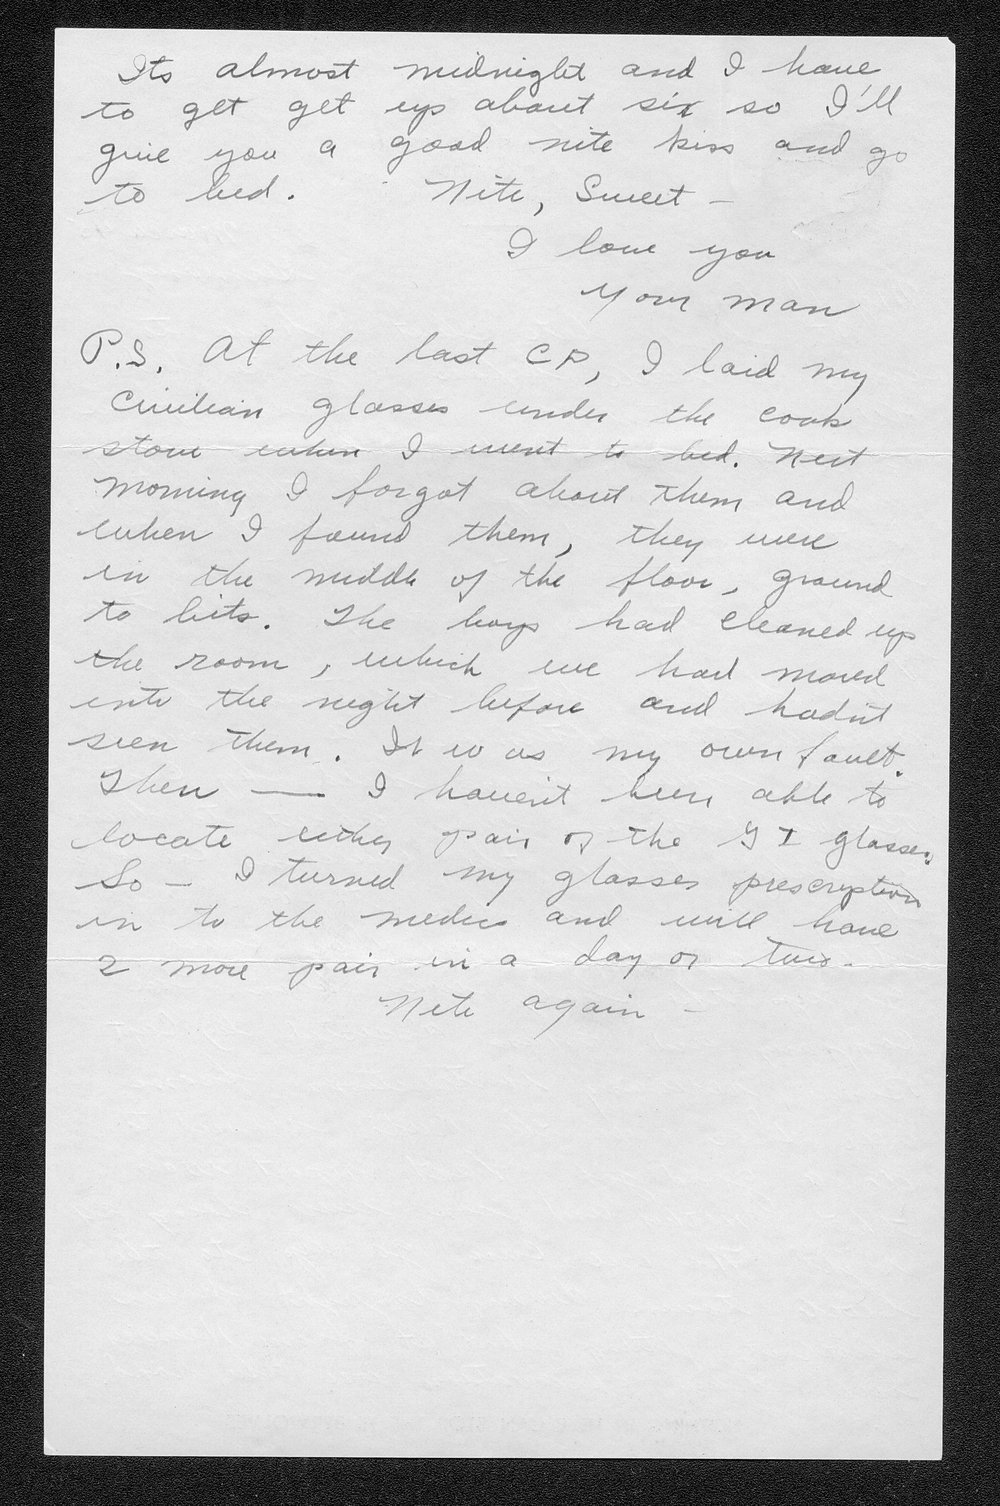 Letters from Hilton Parris Mize to his wife Irene Rosenberger Mize - 11